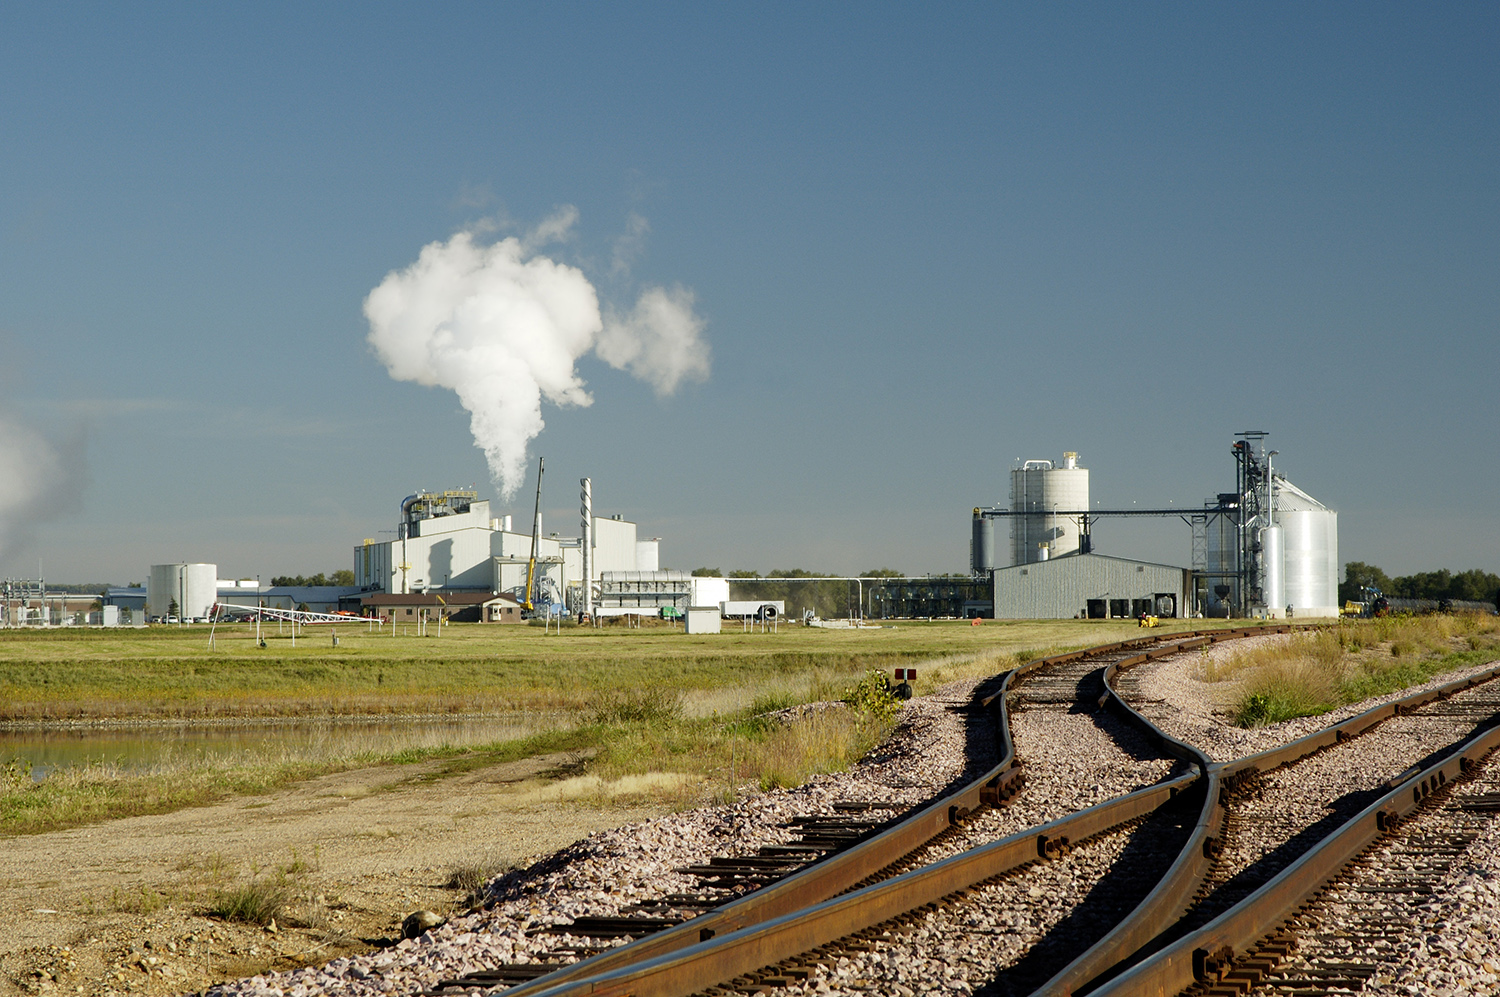 An ethanol production plant in South Dakota.